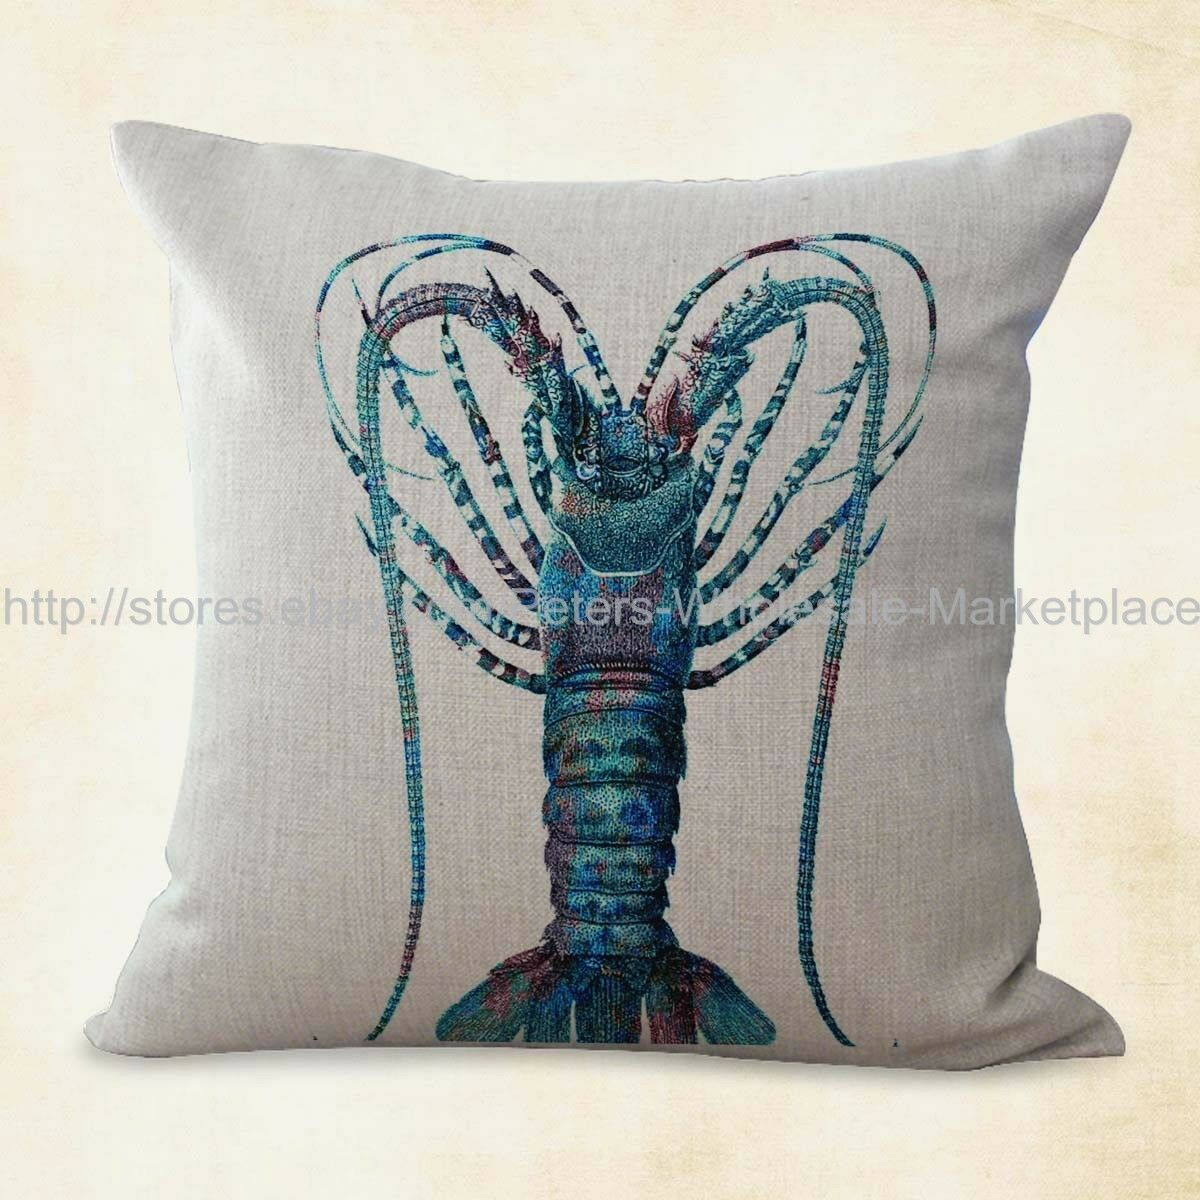 US SELLER set of 2 pillow cover marine life sea animal lobster cushion cover